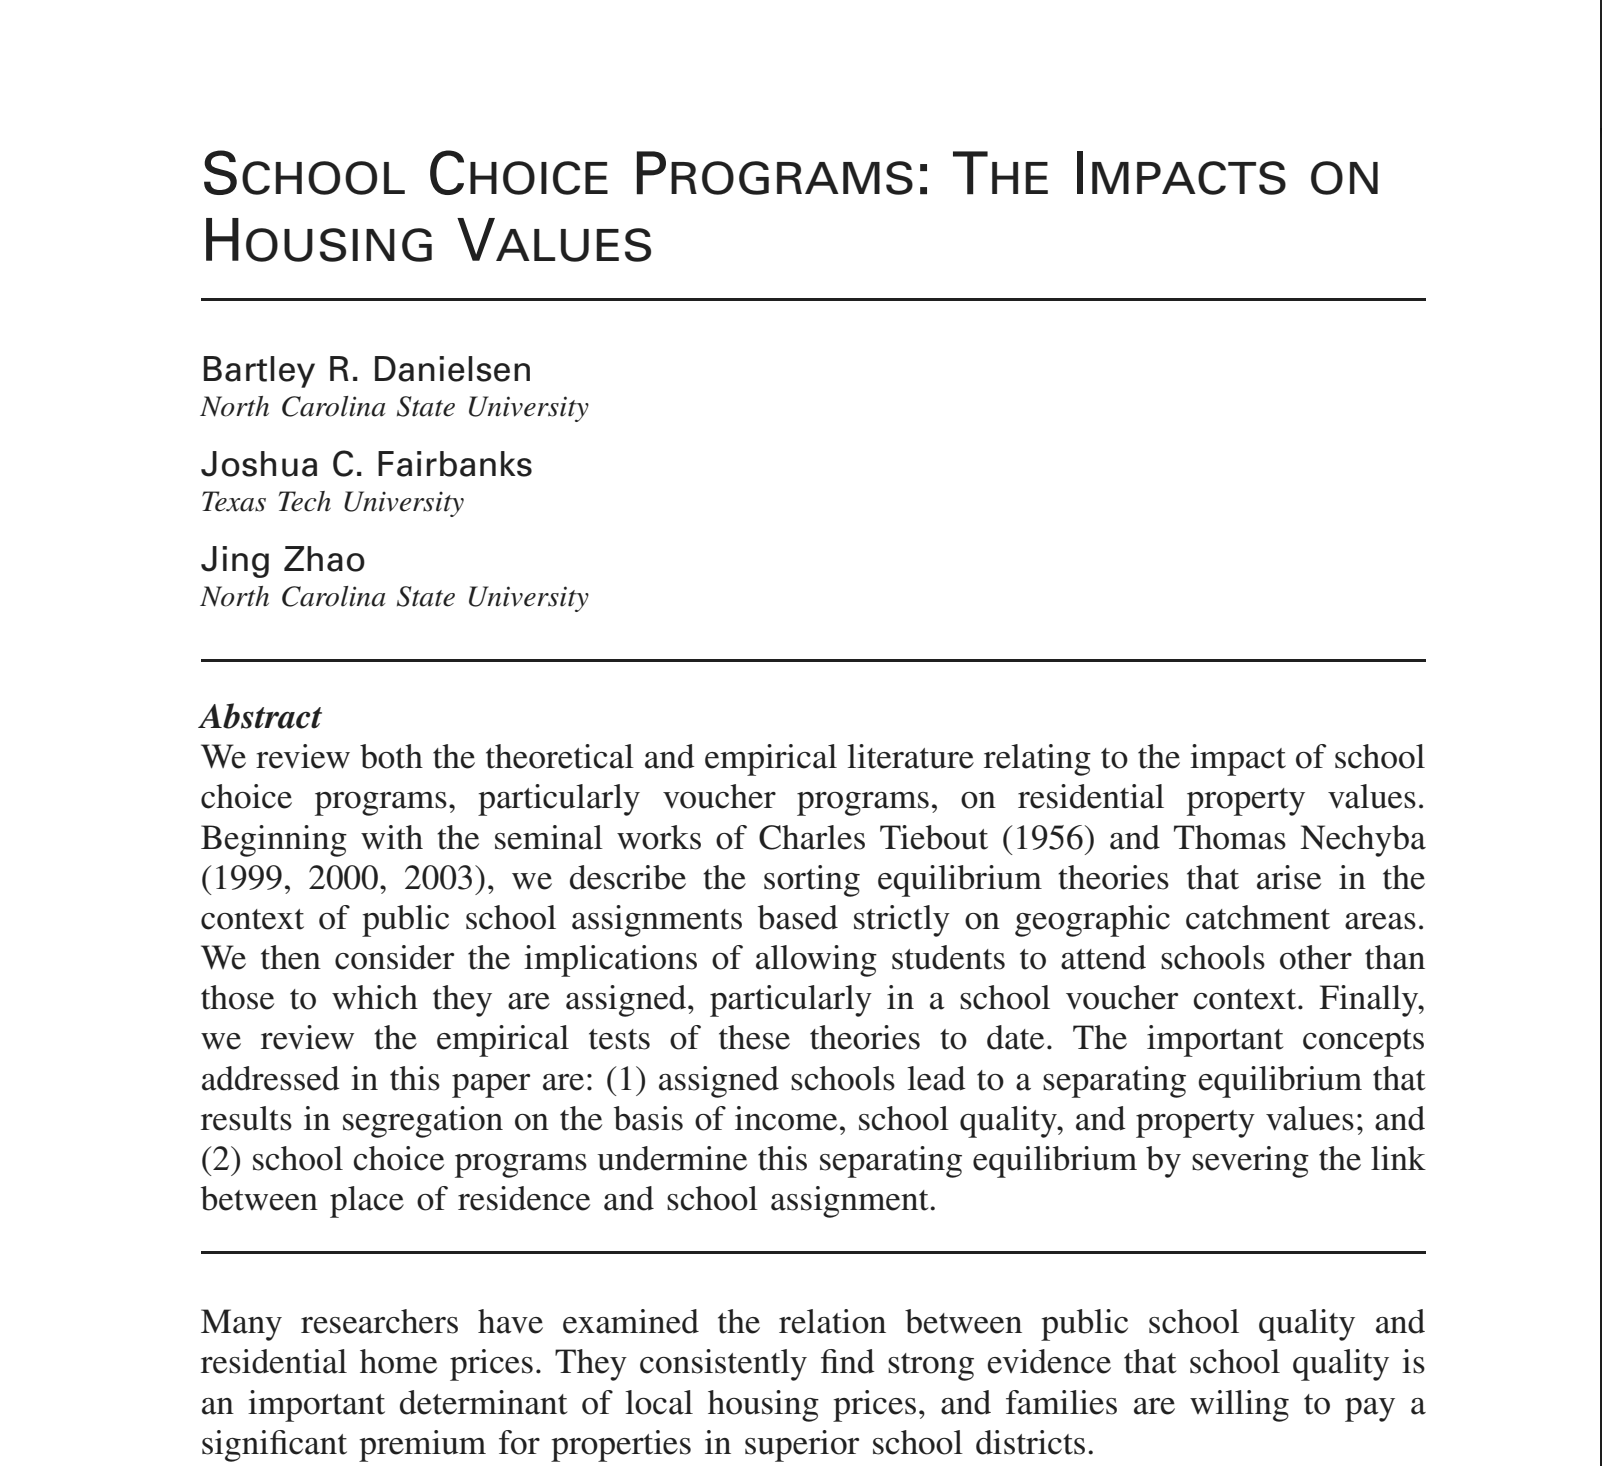 School Choice Programs: The Impacts on Housing Values